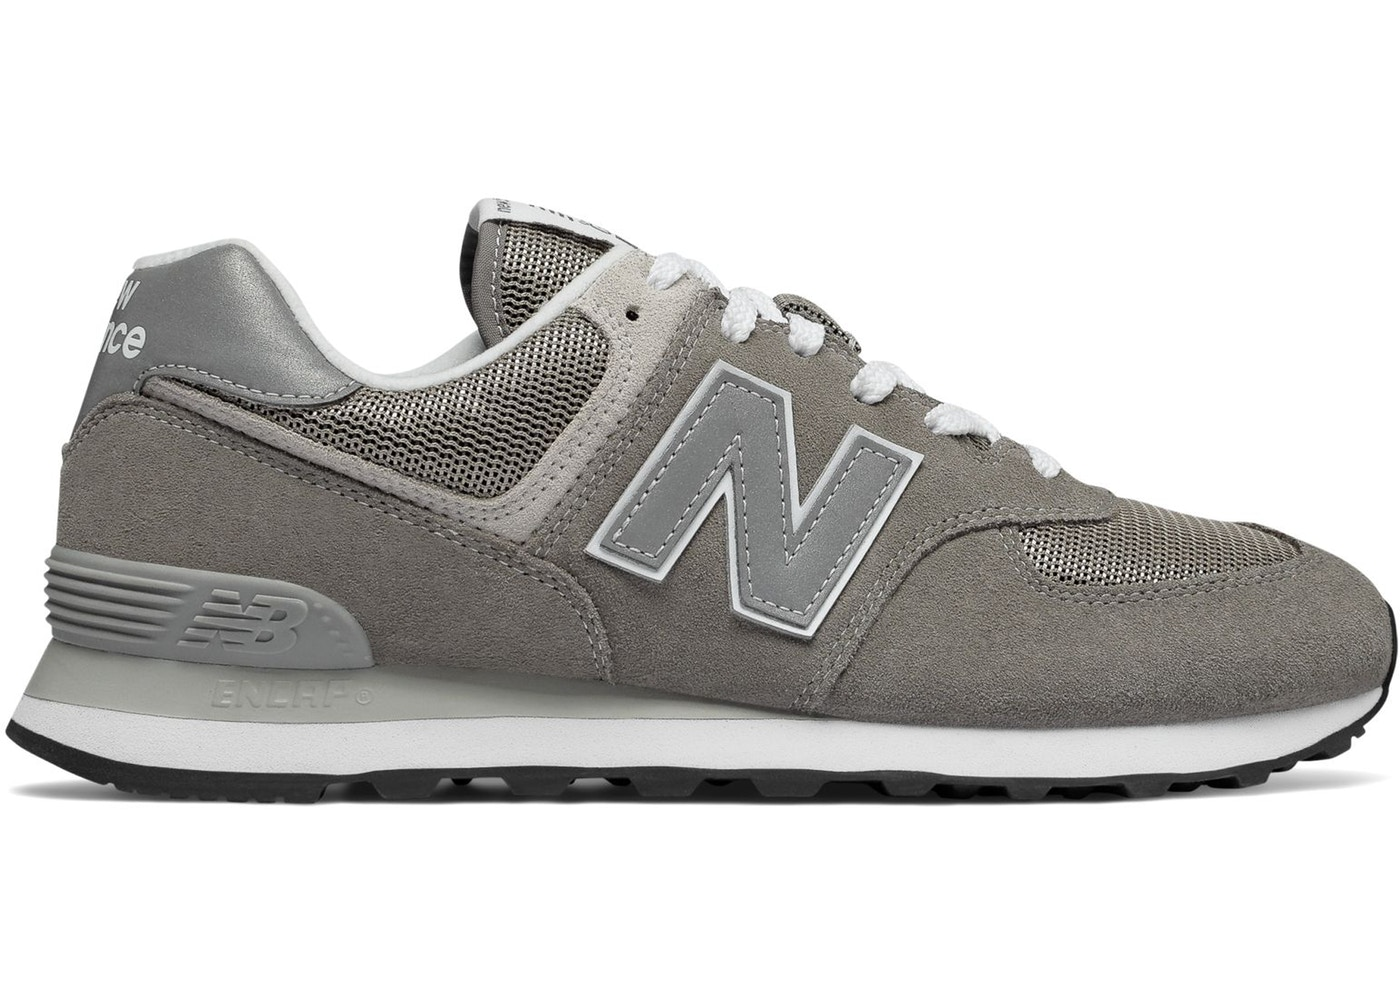 New Balance Size 18 Shoes - Release Date d99bef7cb7